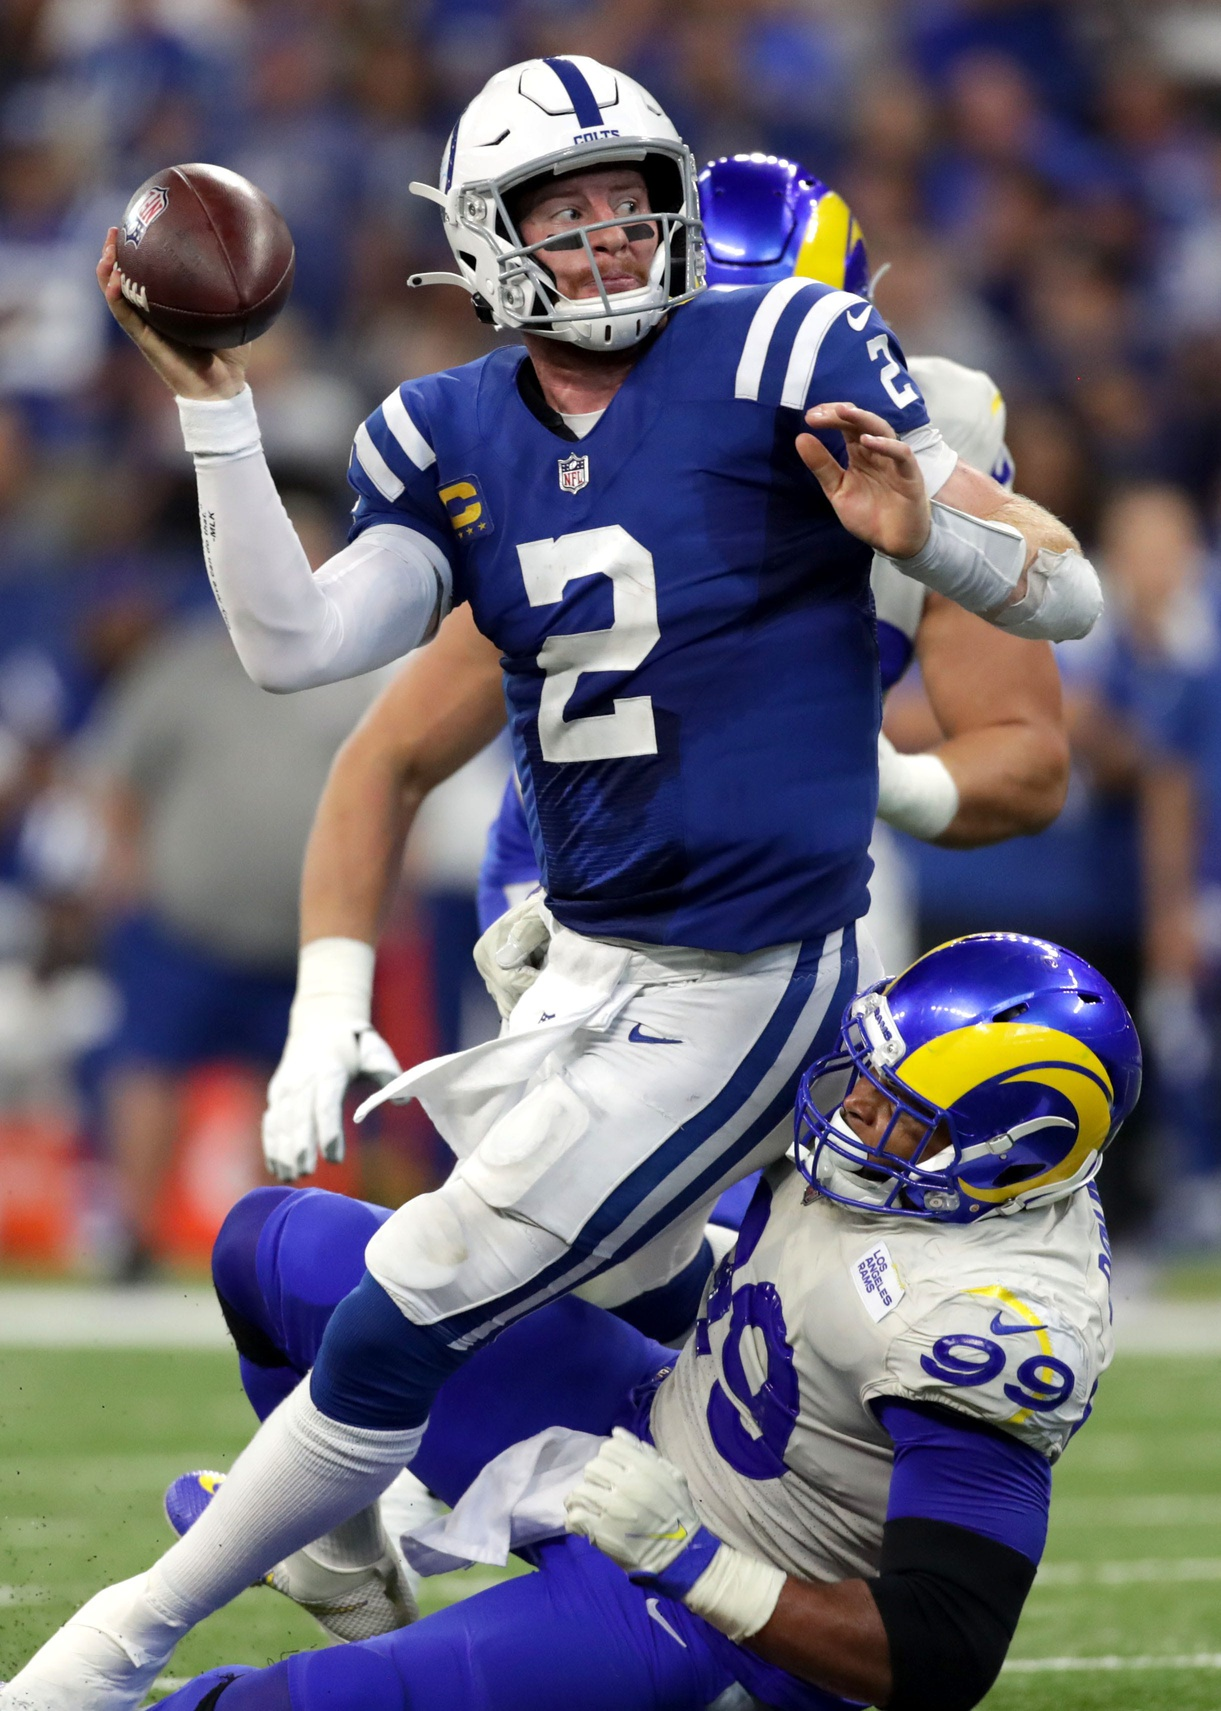 Rams beat Colts, Wentz to undergo ankle evaluation